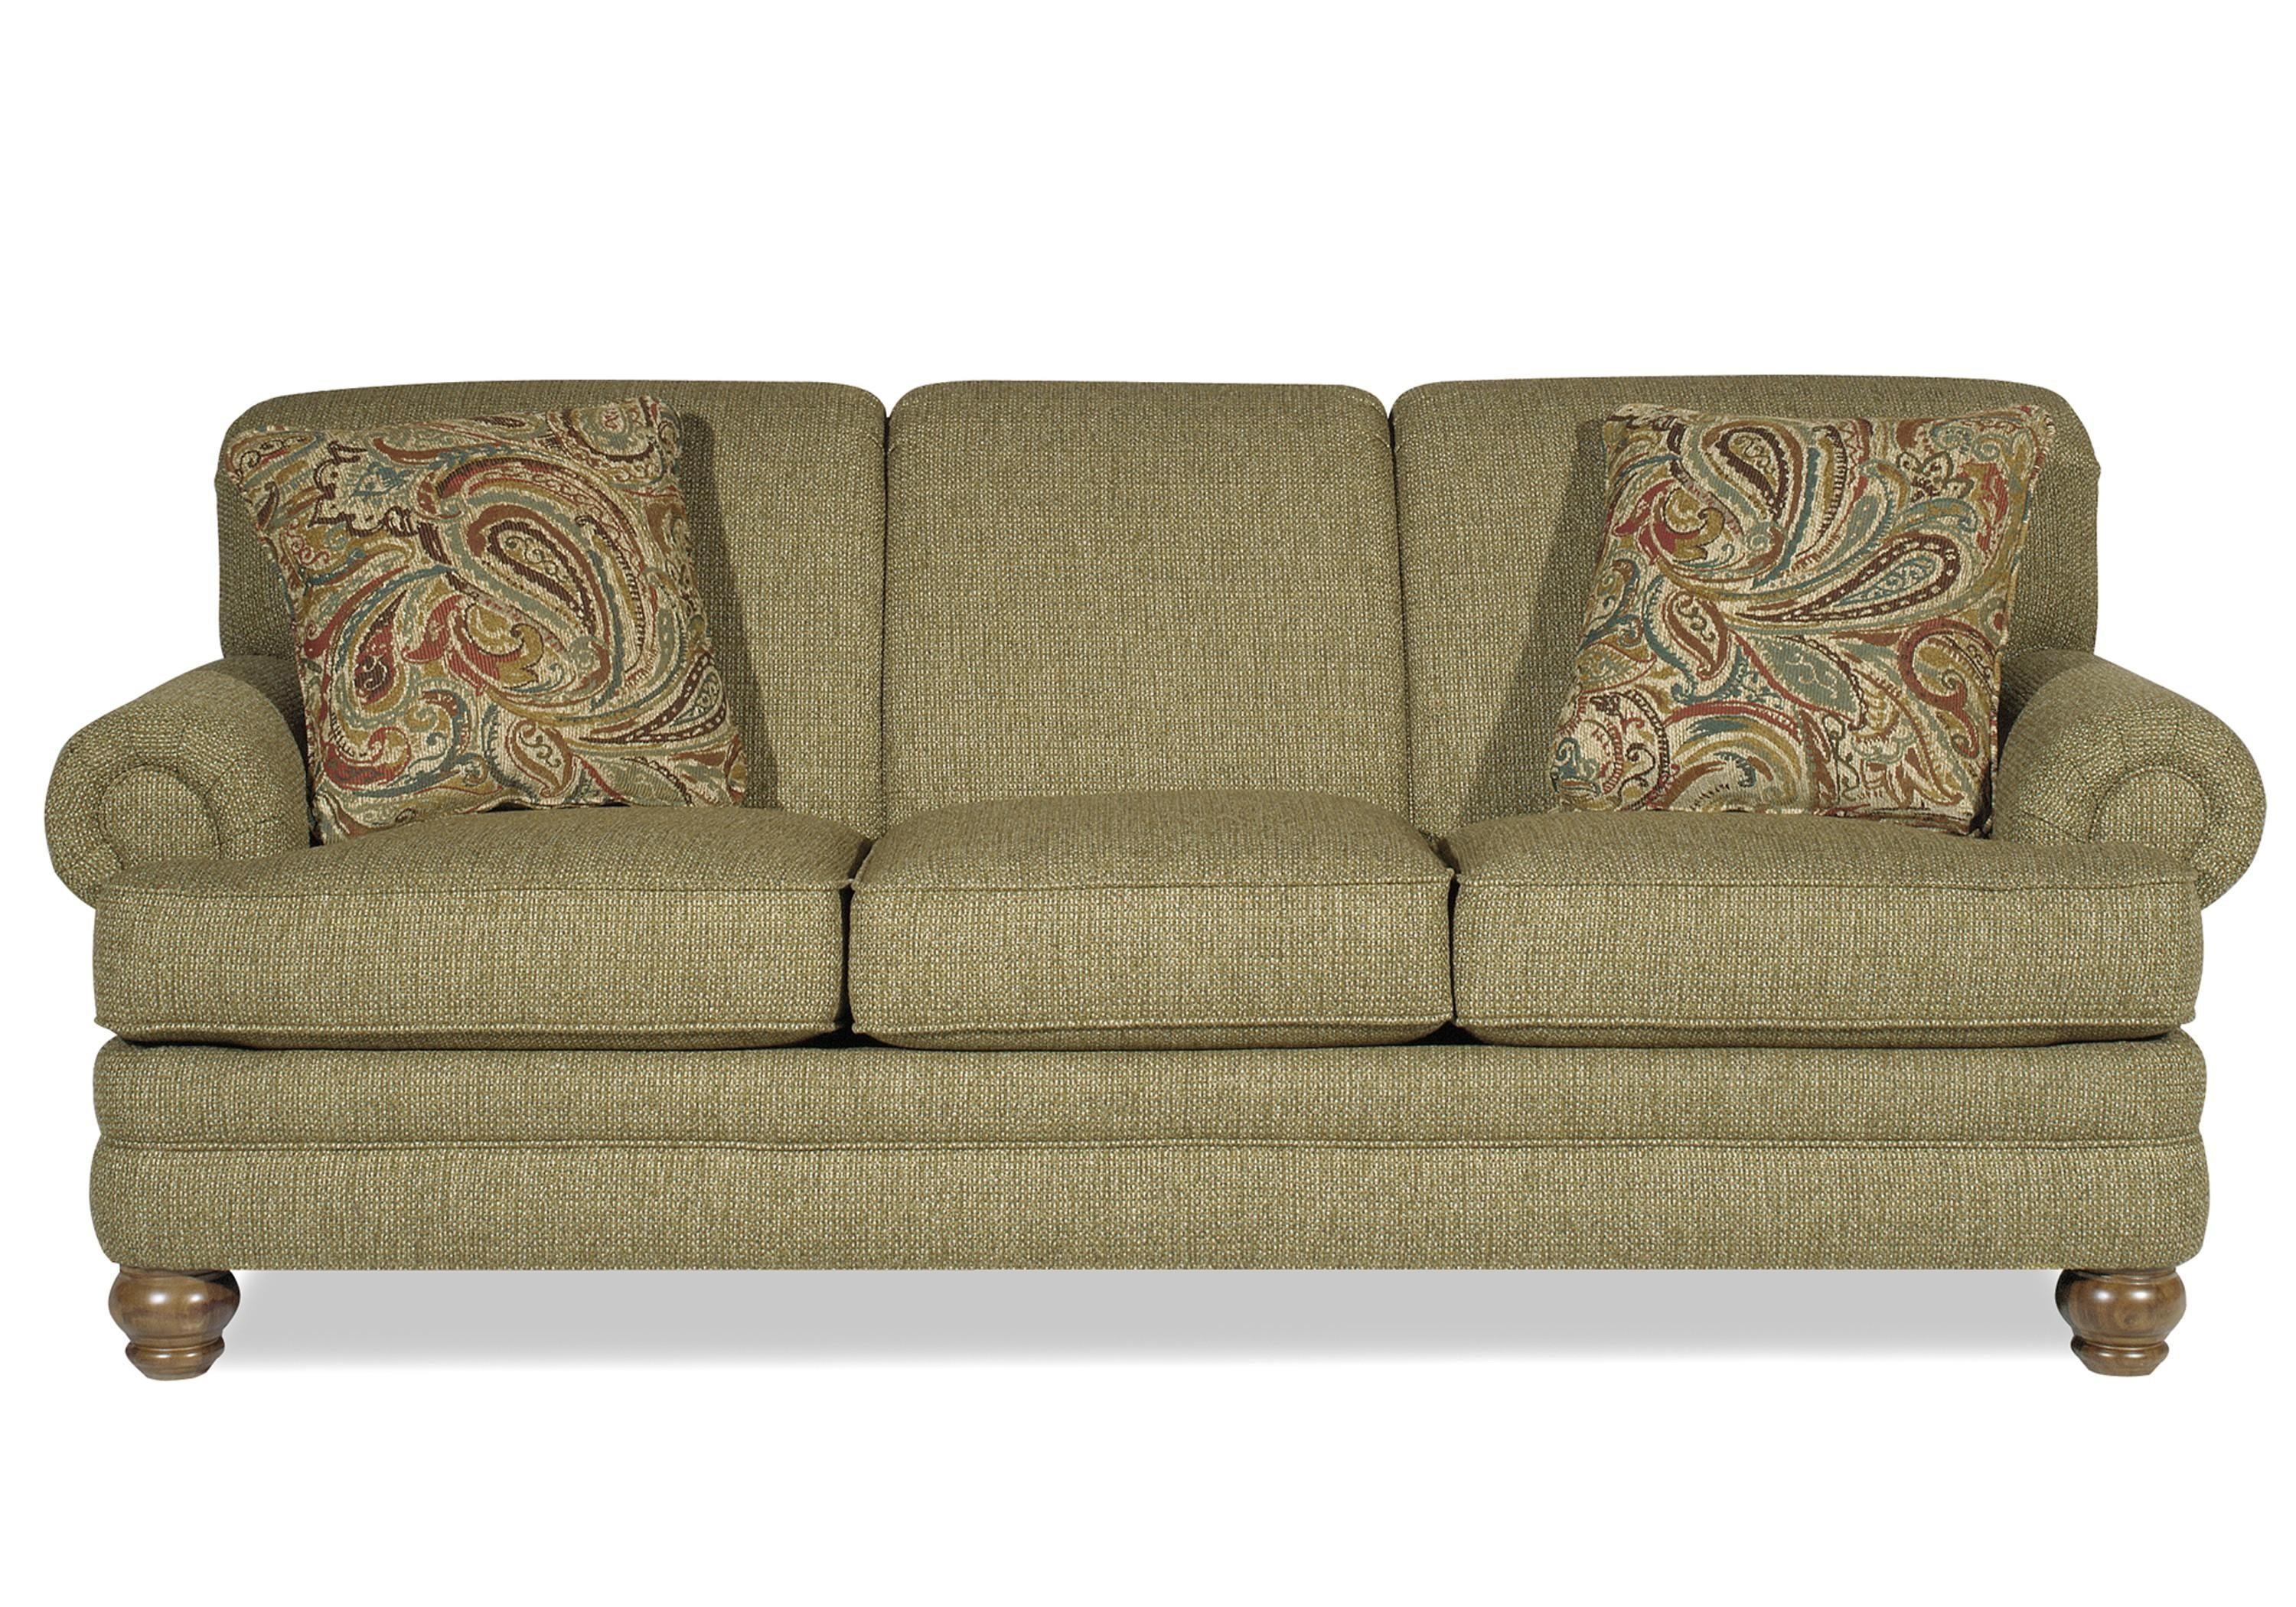 Hickory Craft 7281 Traditional Sofa With Rolled Arms And Turned Legs